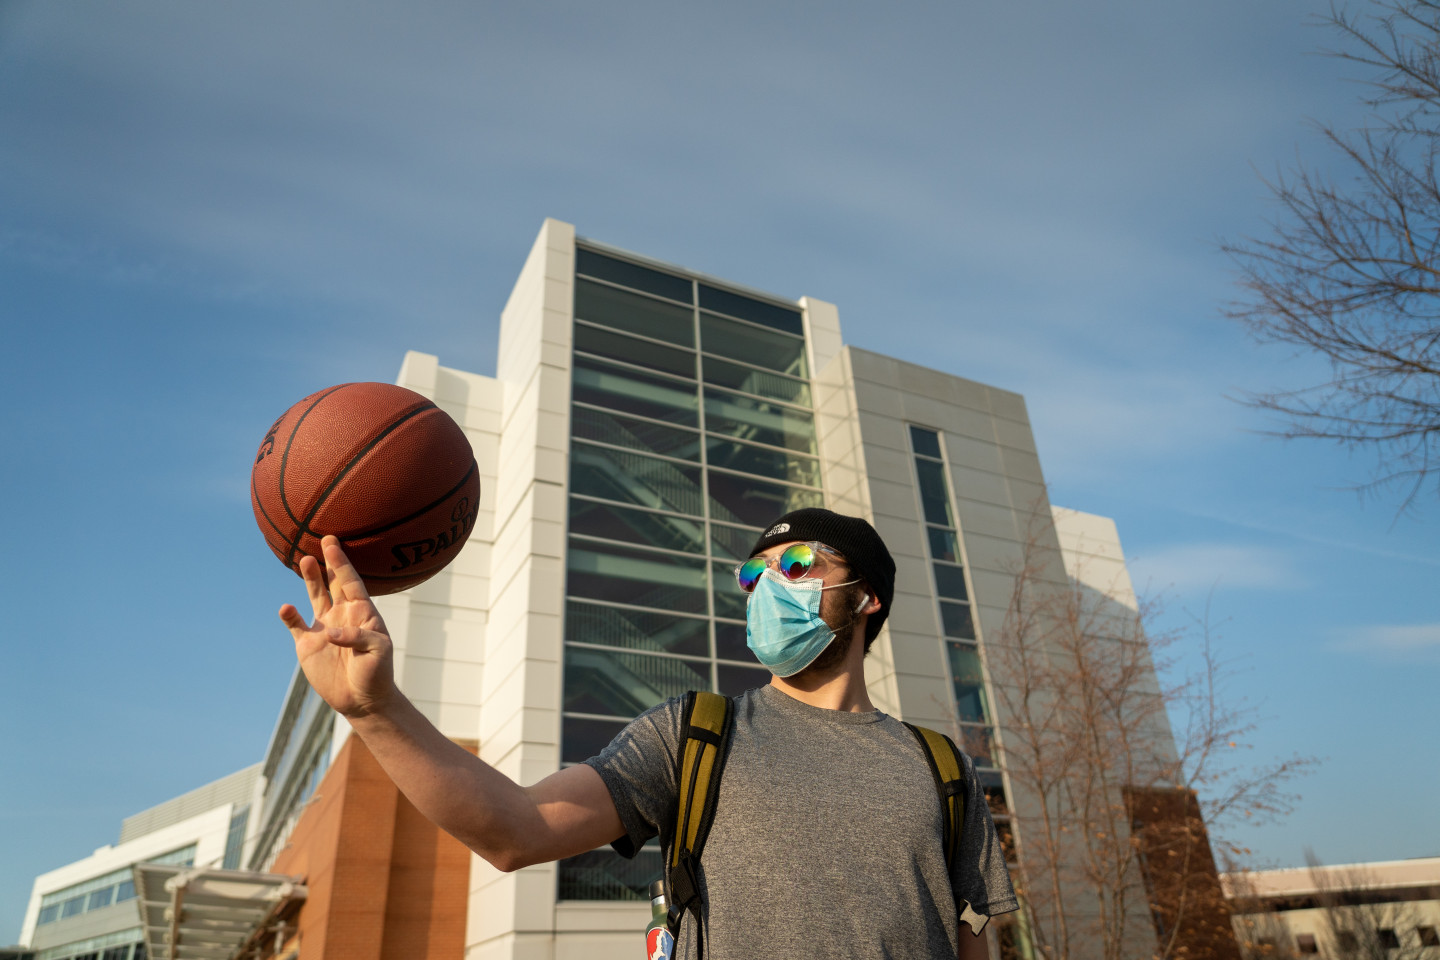 A student spins a basketball on his finger.